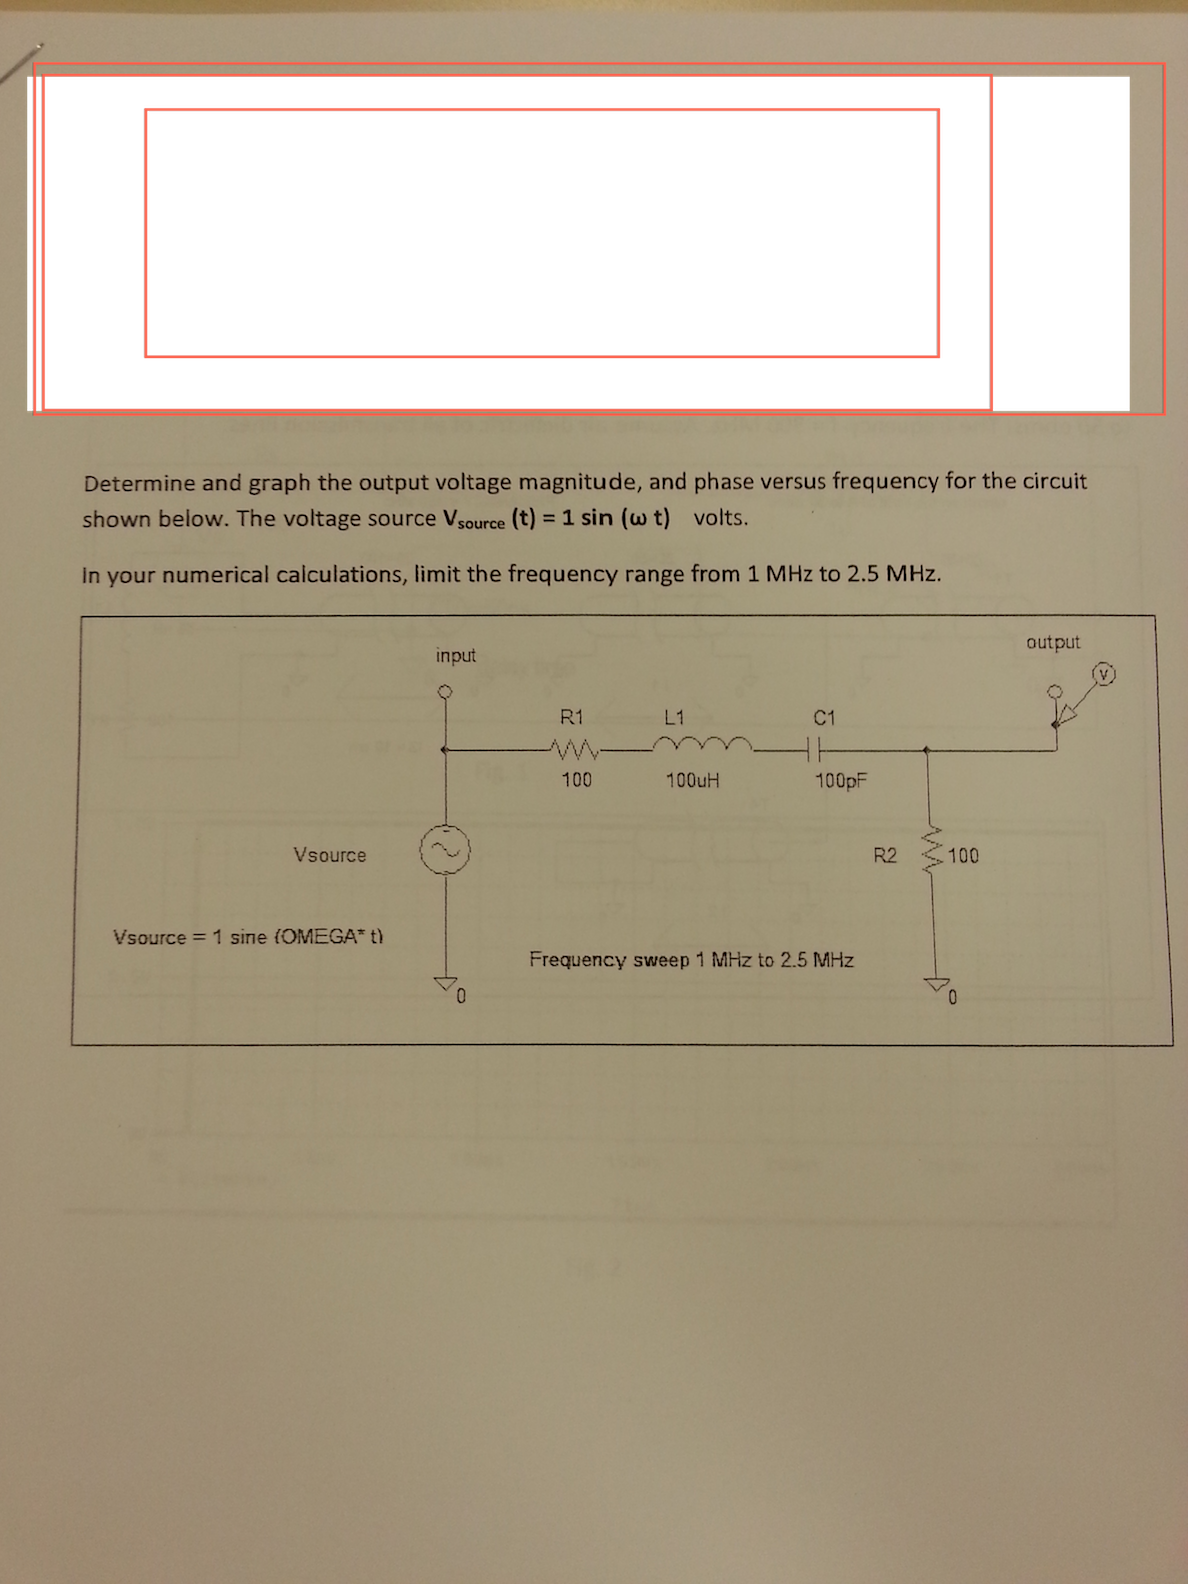 Determine and graph the output voltage magnitude,